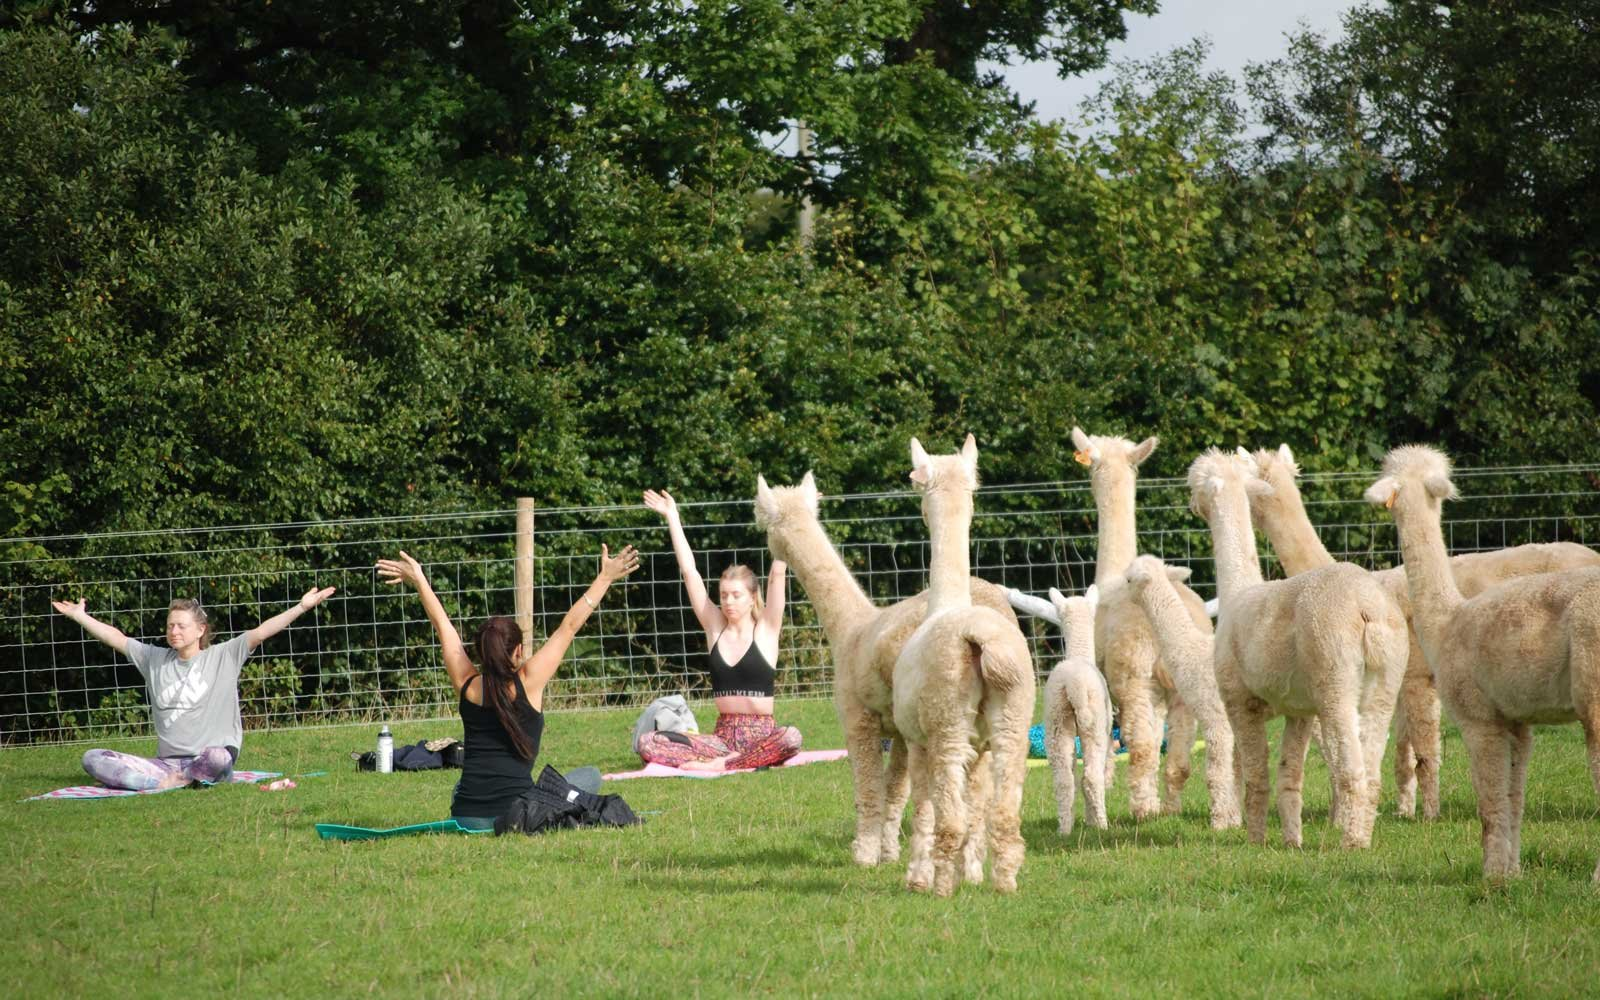 You Can Do Yoga With Cuddly, Adorable Alpacas at This Farm in England